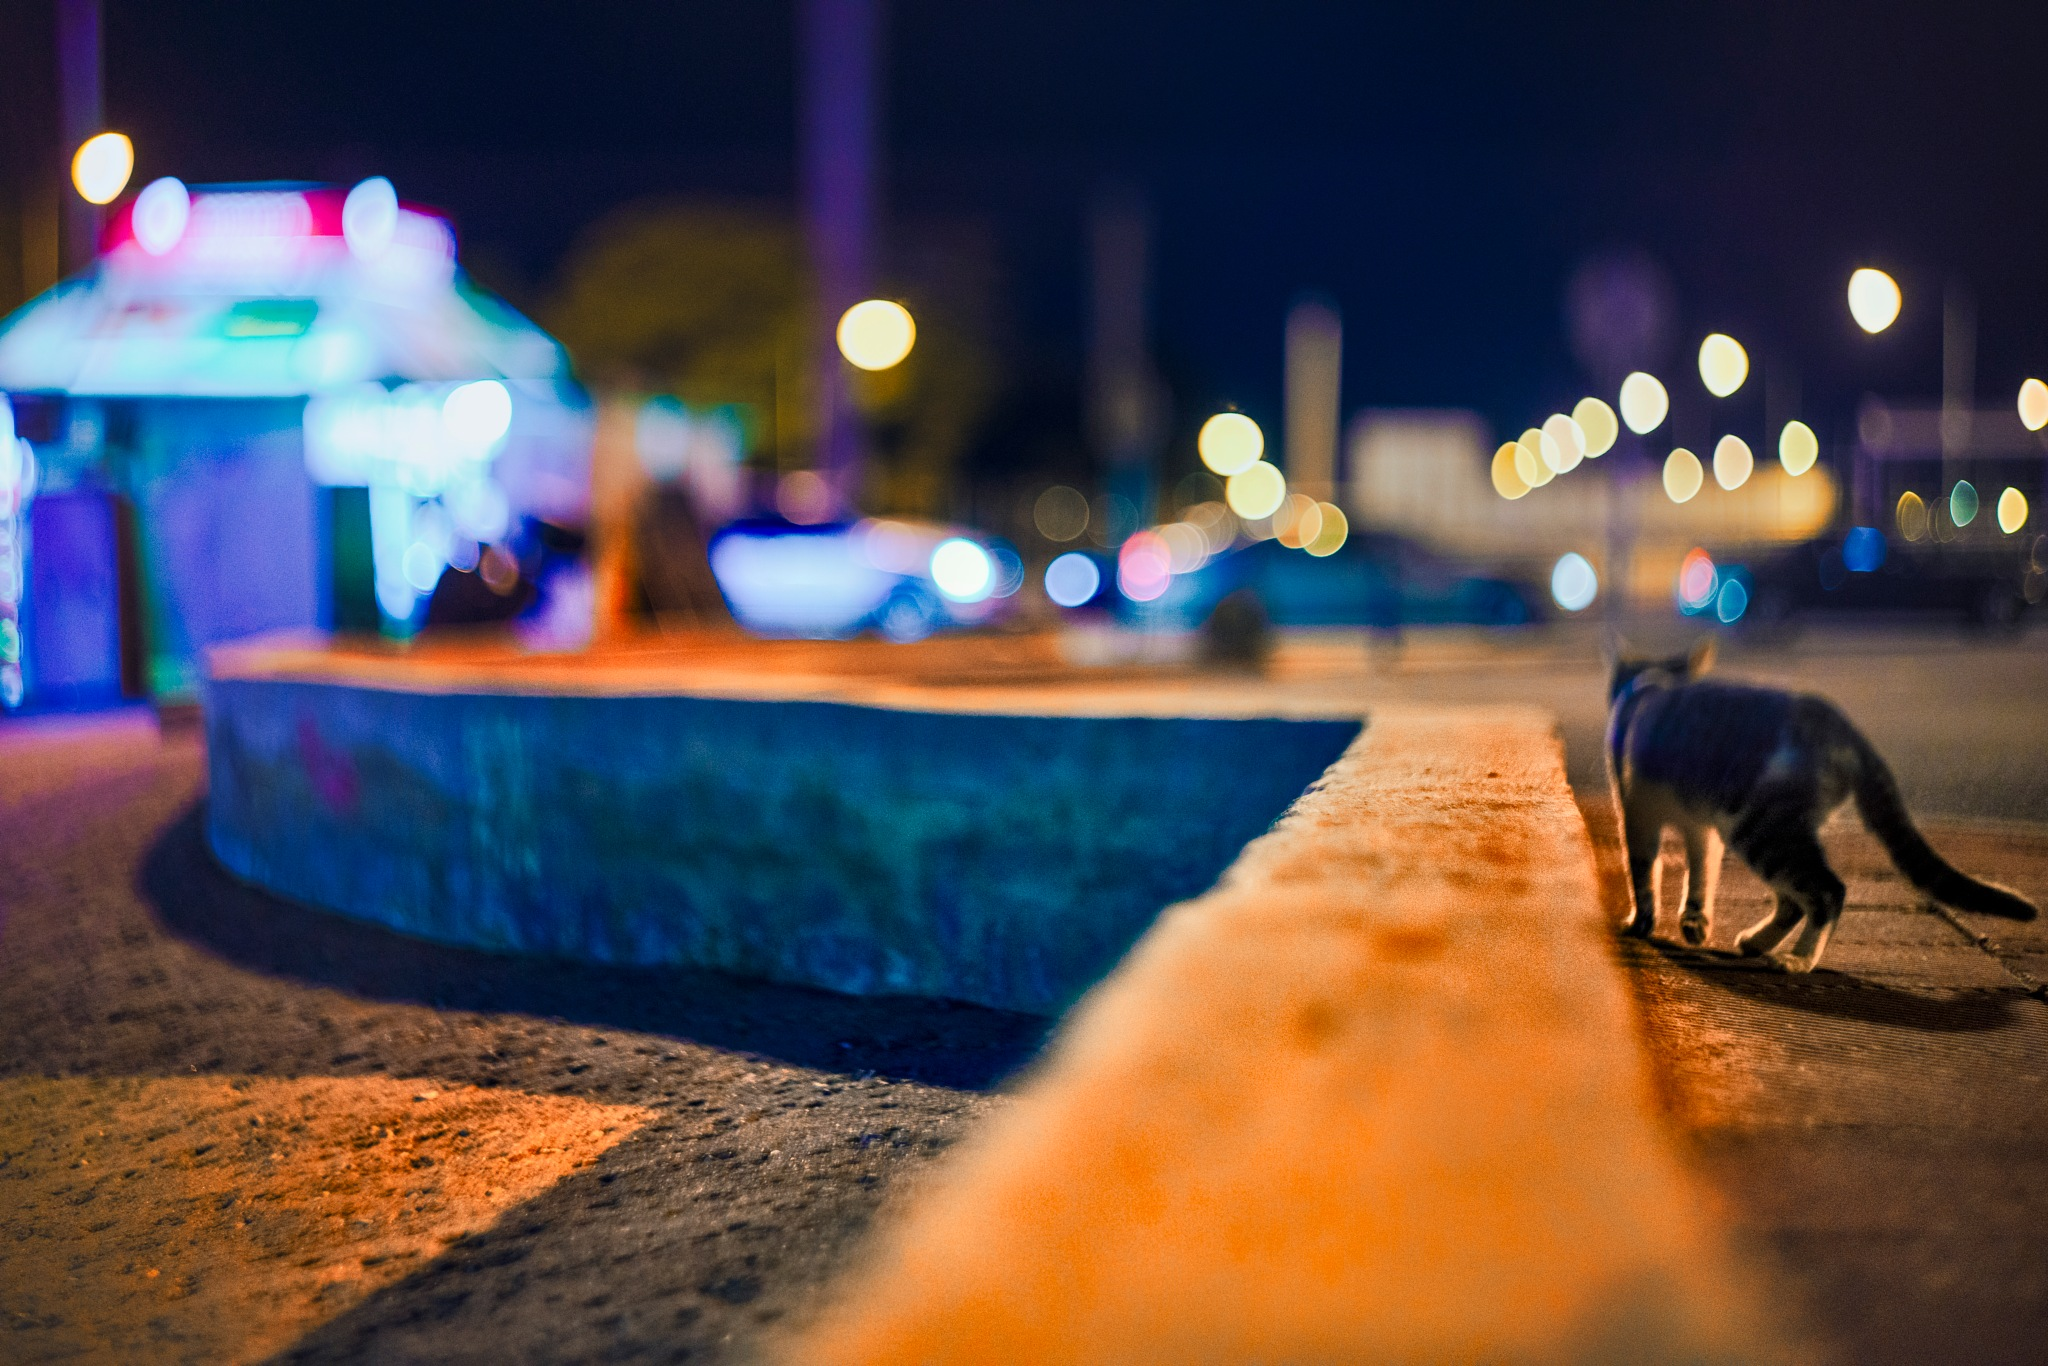 Athens night catwalk by Stathis Floros